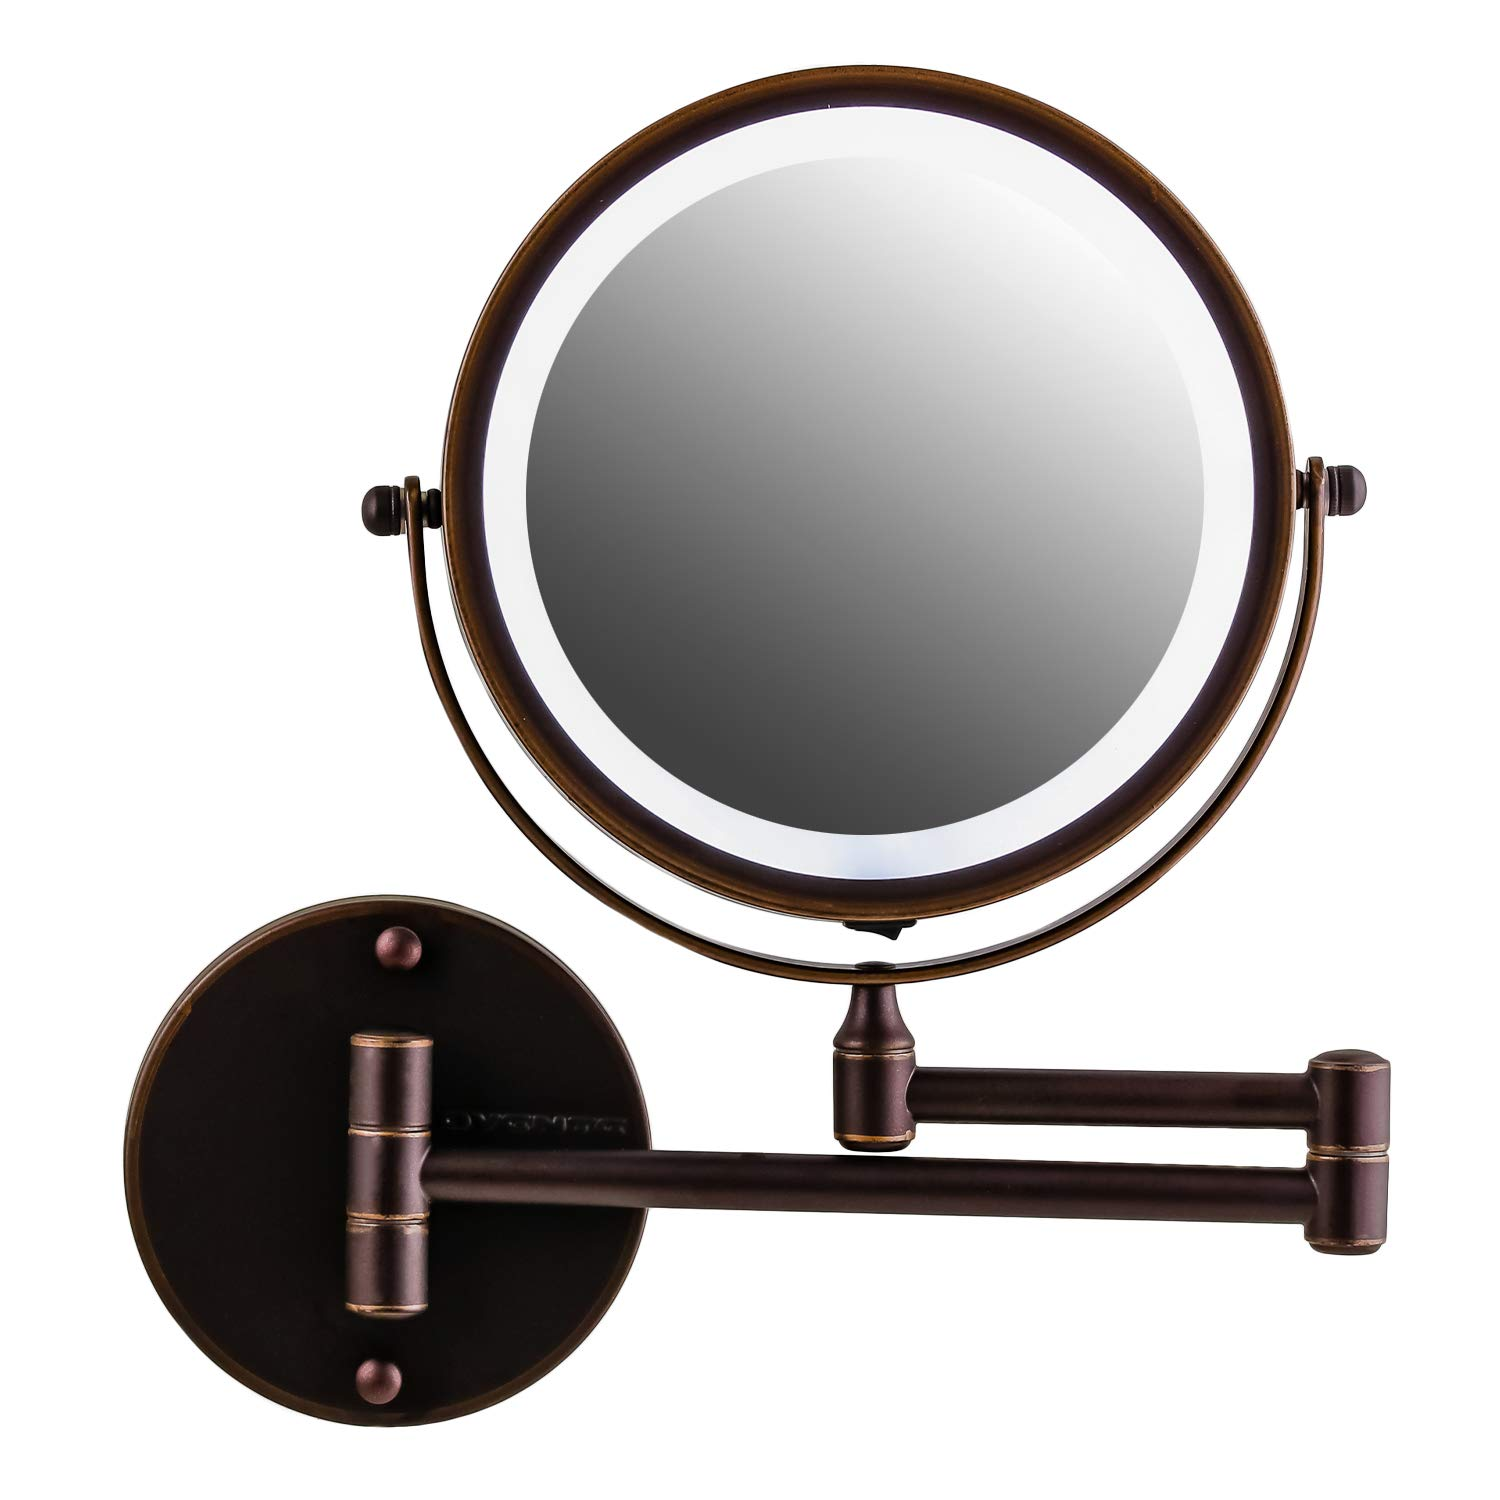 The Best wall mount magnifying makeup mirror with light - Our pick